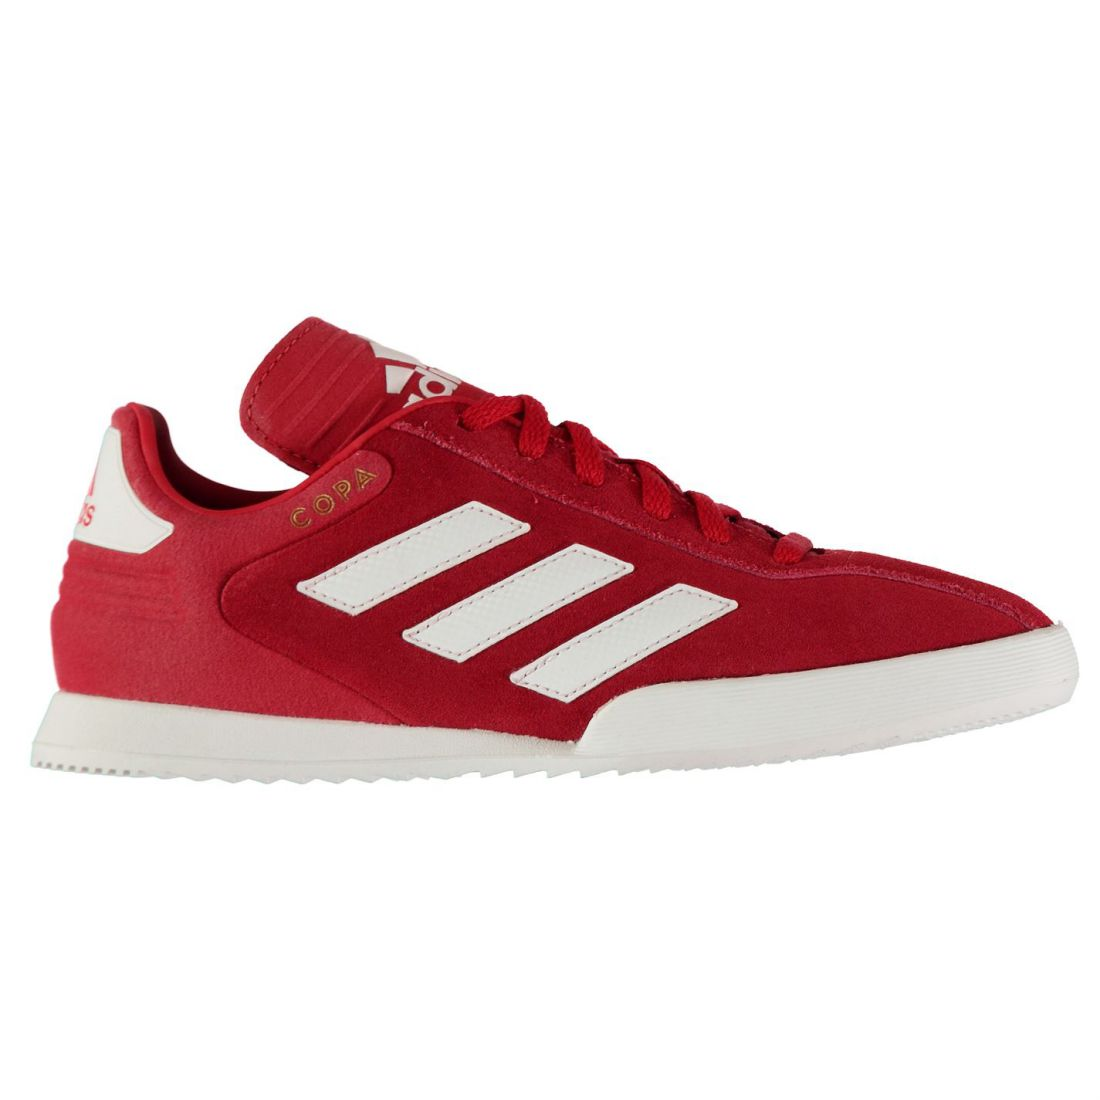 135a4a0e61 adidas Kids Boys Copa Super Suede Trainers Lace Up Padded Ankle Collar  Stripe